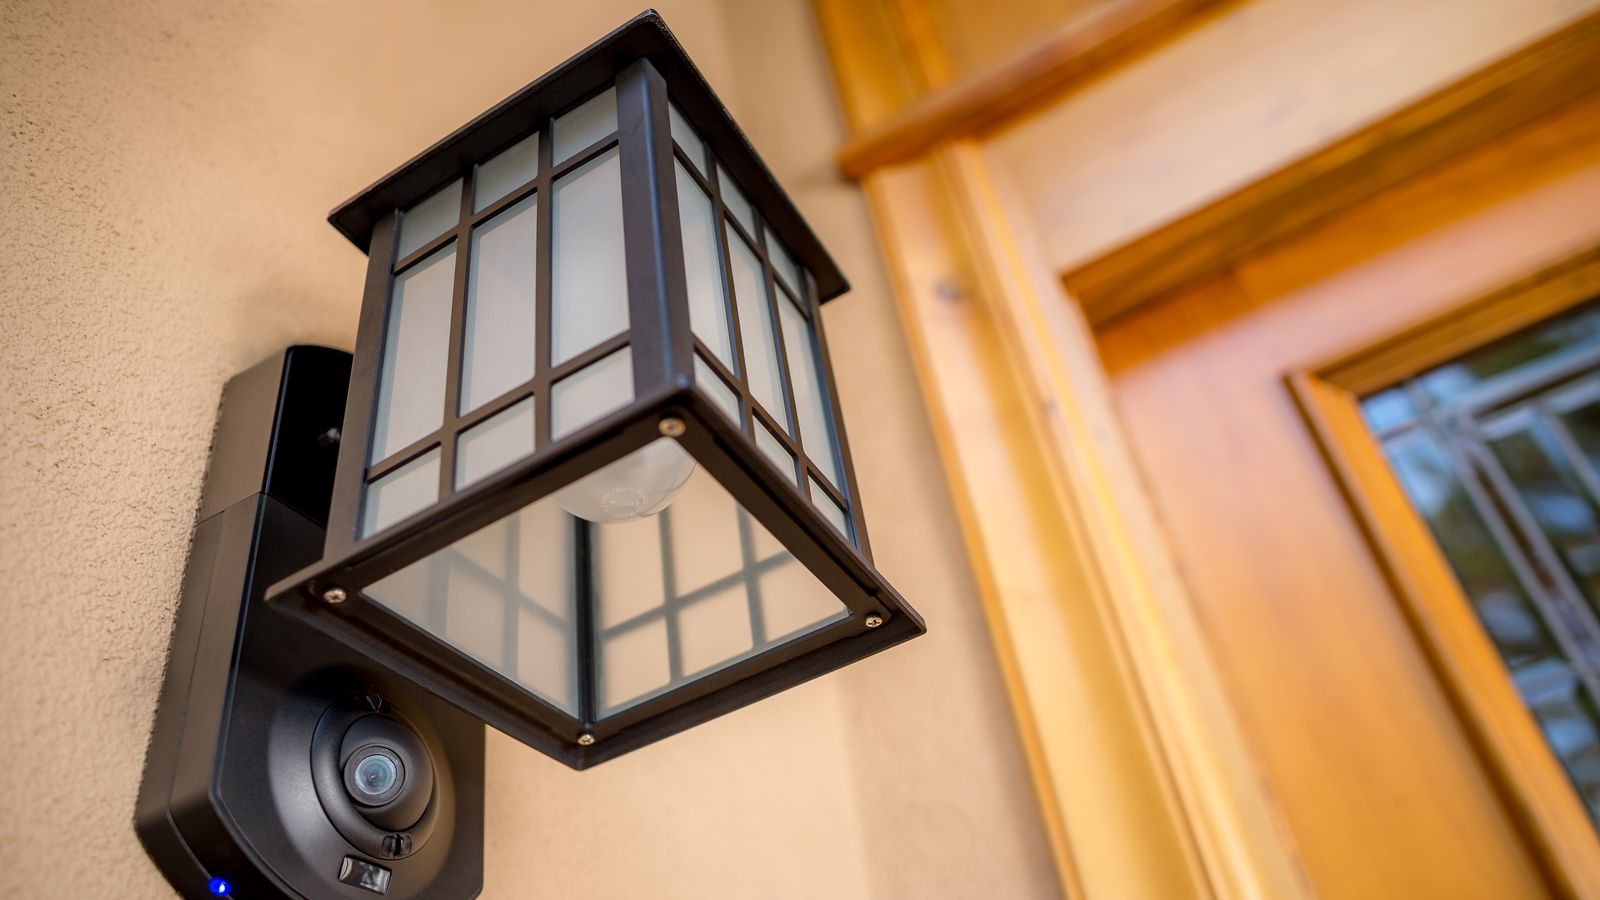 Motion Detector Front Porch Light